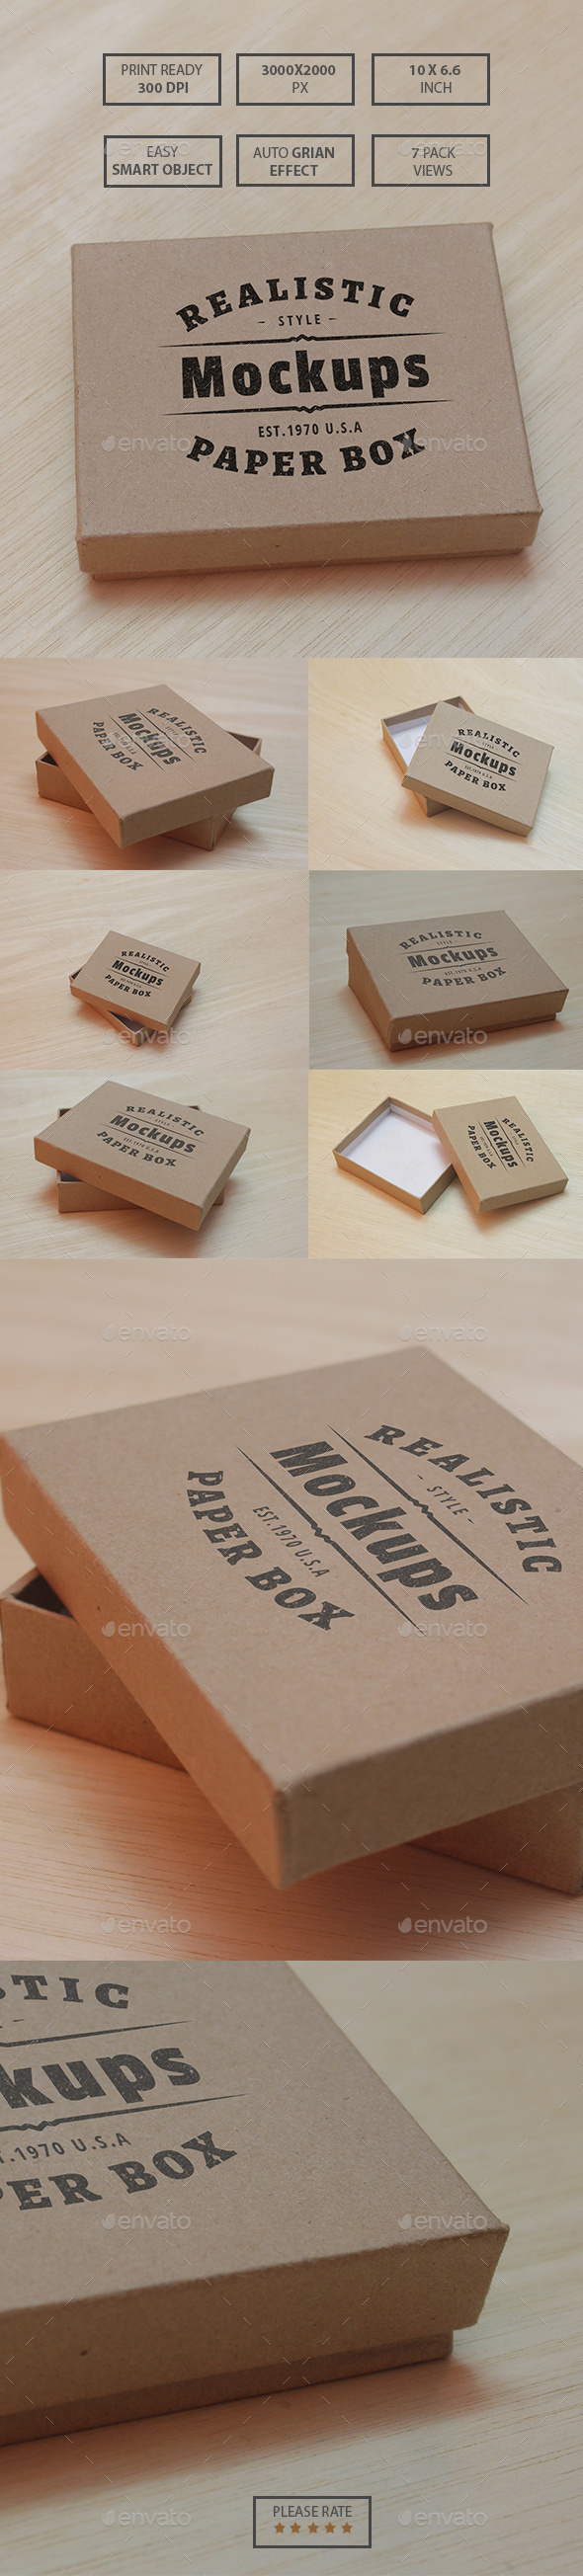 Paper Box Realistic Mockups - Product Mock-Ups Graphics